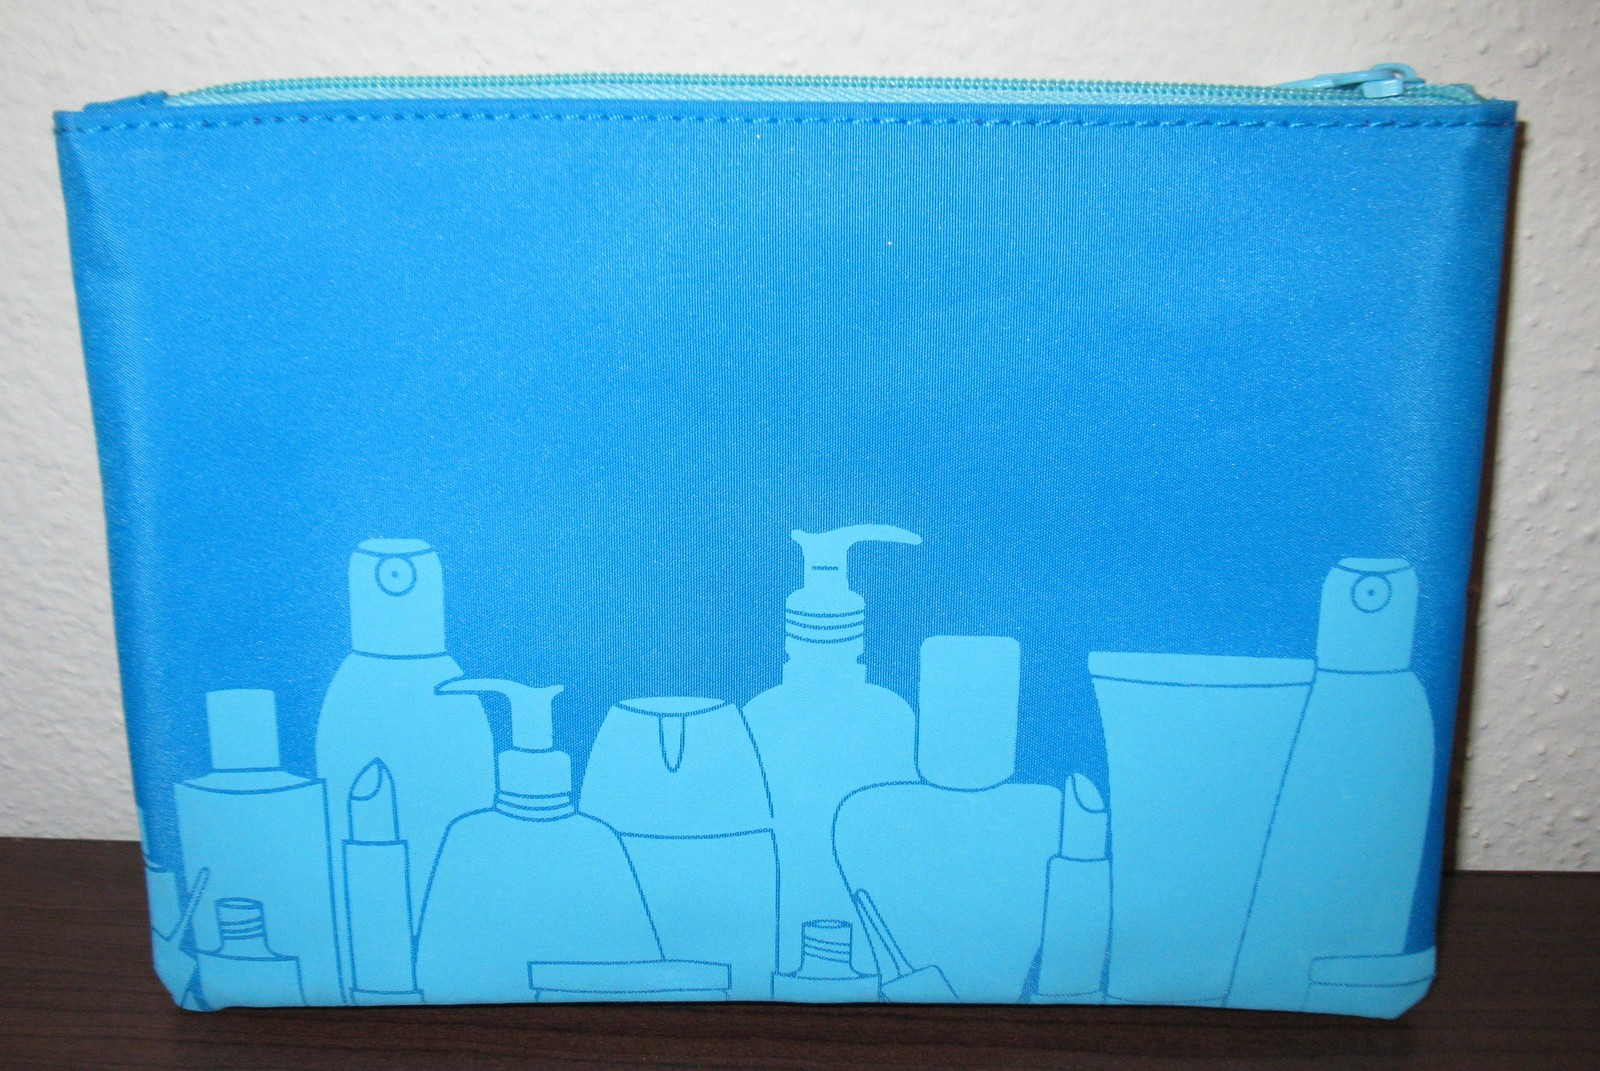 Primary image for Ipsy Blue Makeup Bag 7 x 5 in New! #T971